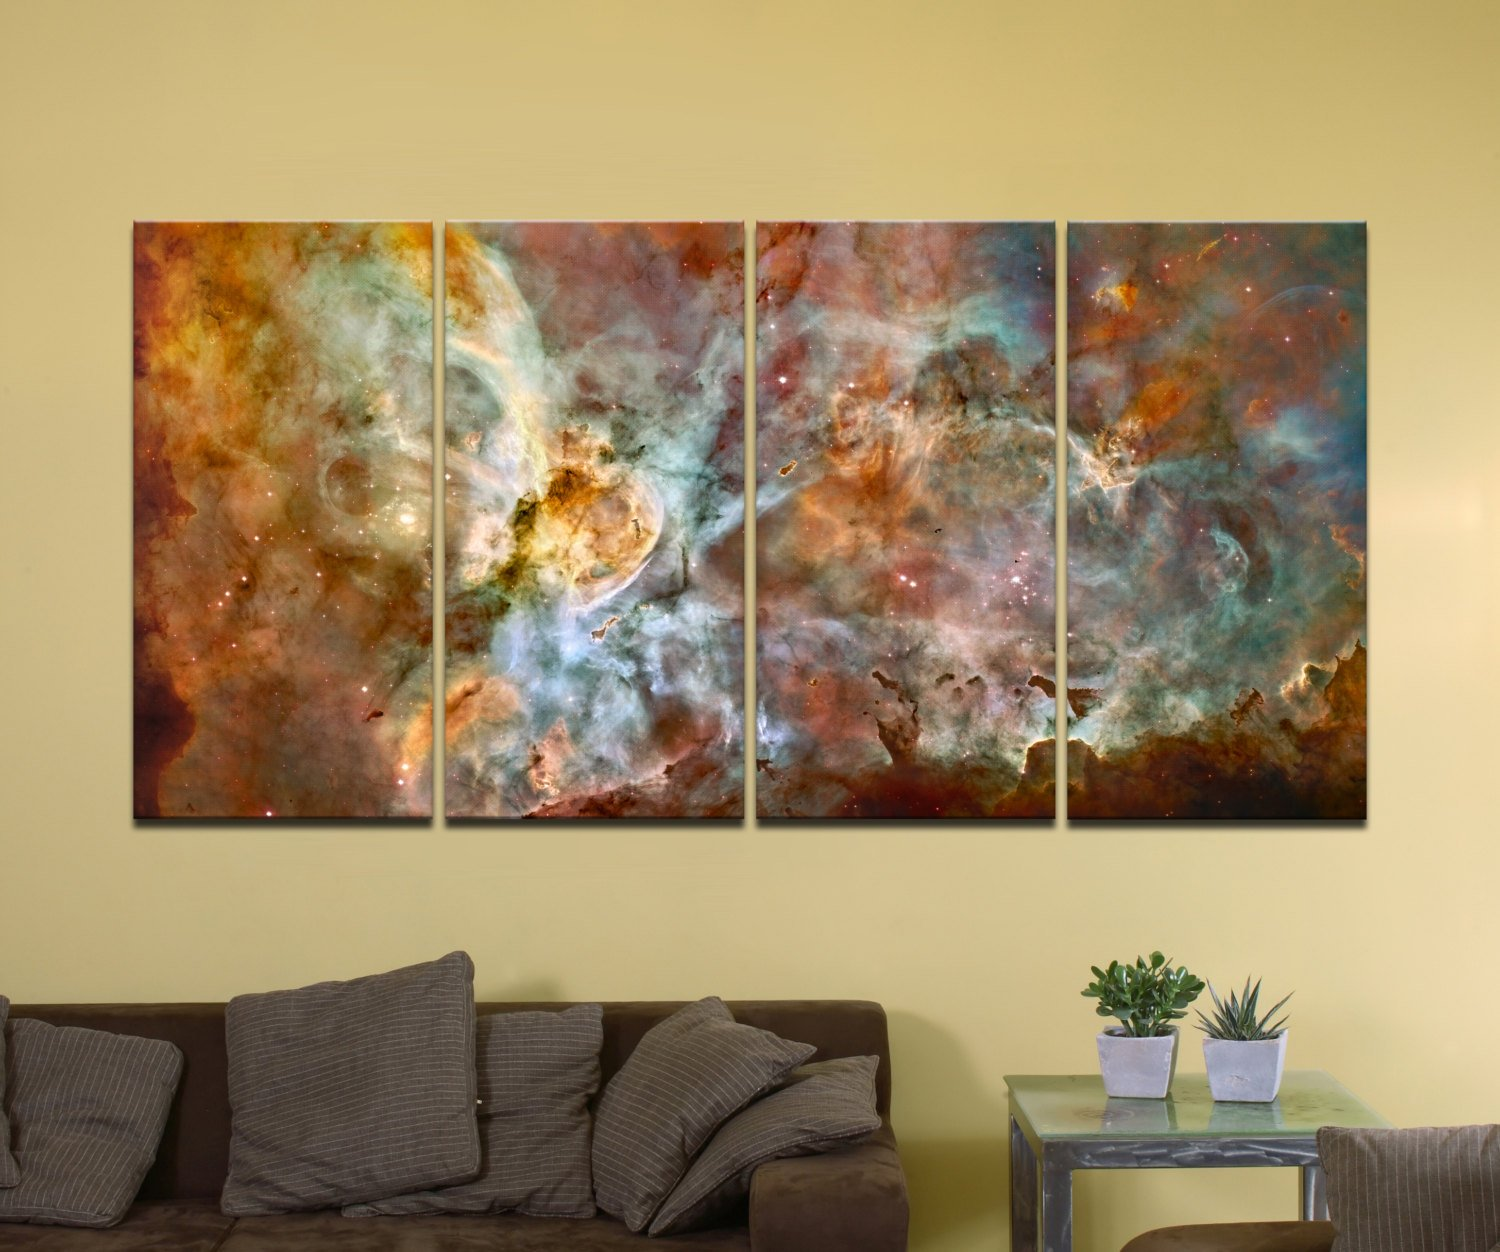 The Carina Nebula, Star Birth in the Extreme (Color) – 72″ x 36″, 4-Piece Split Canvas Wall Mural